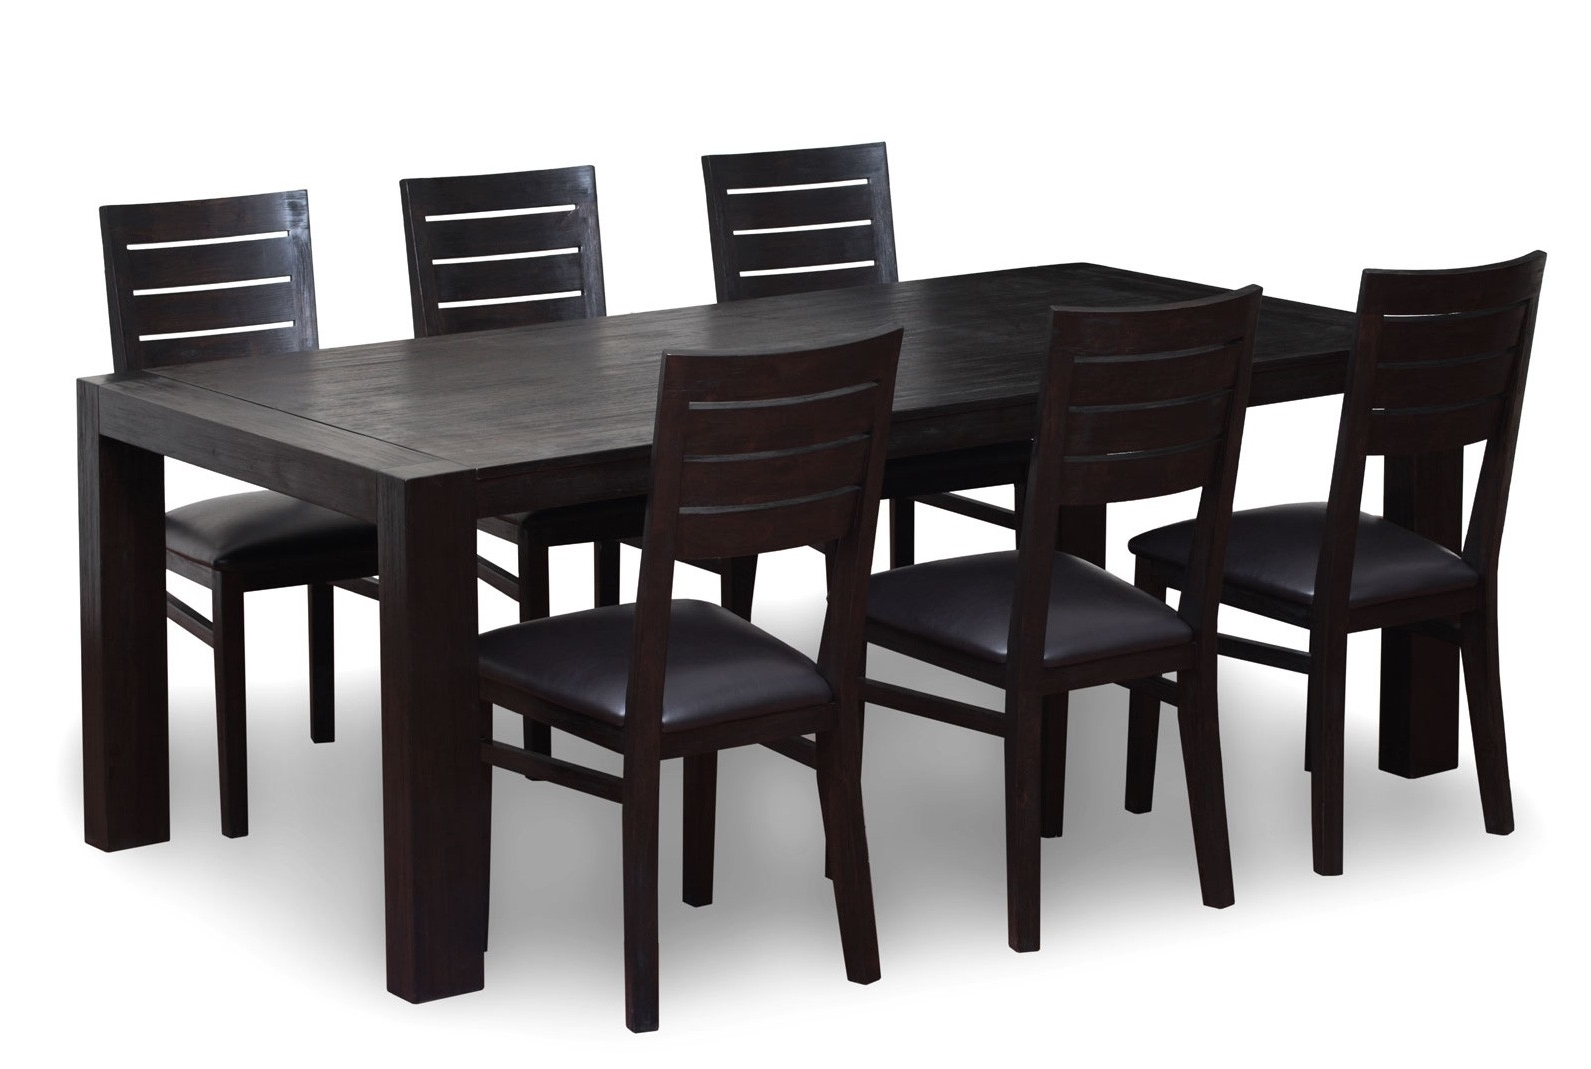 6 Seater Wooden Dining Table Set - Antique Ebony intended for Most Current 6 Seater Dining Tables